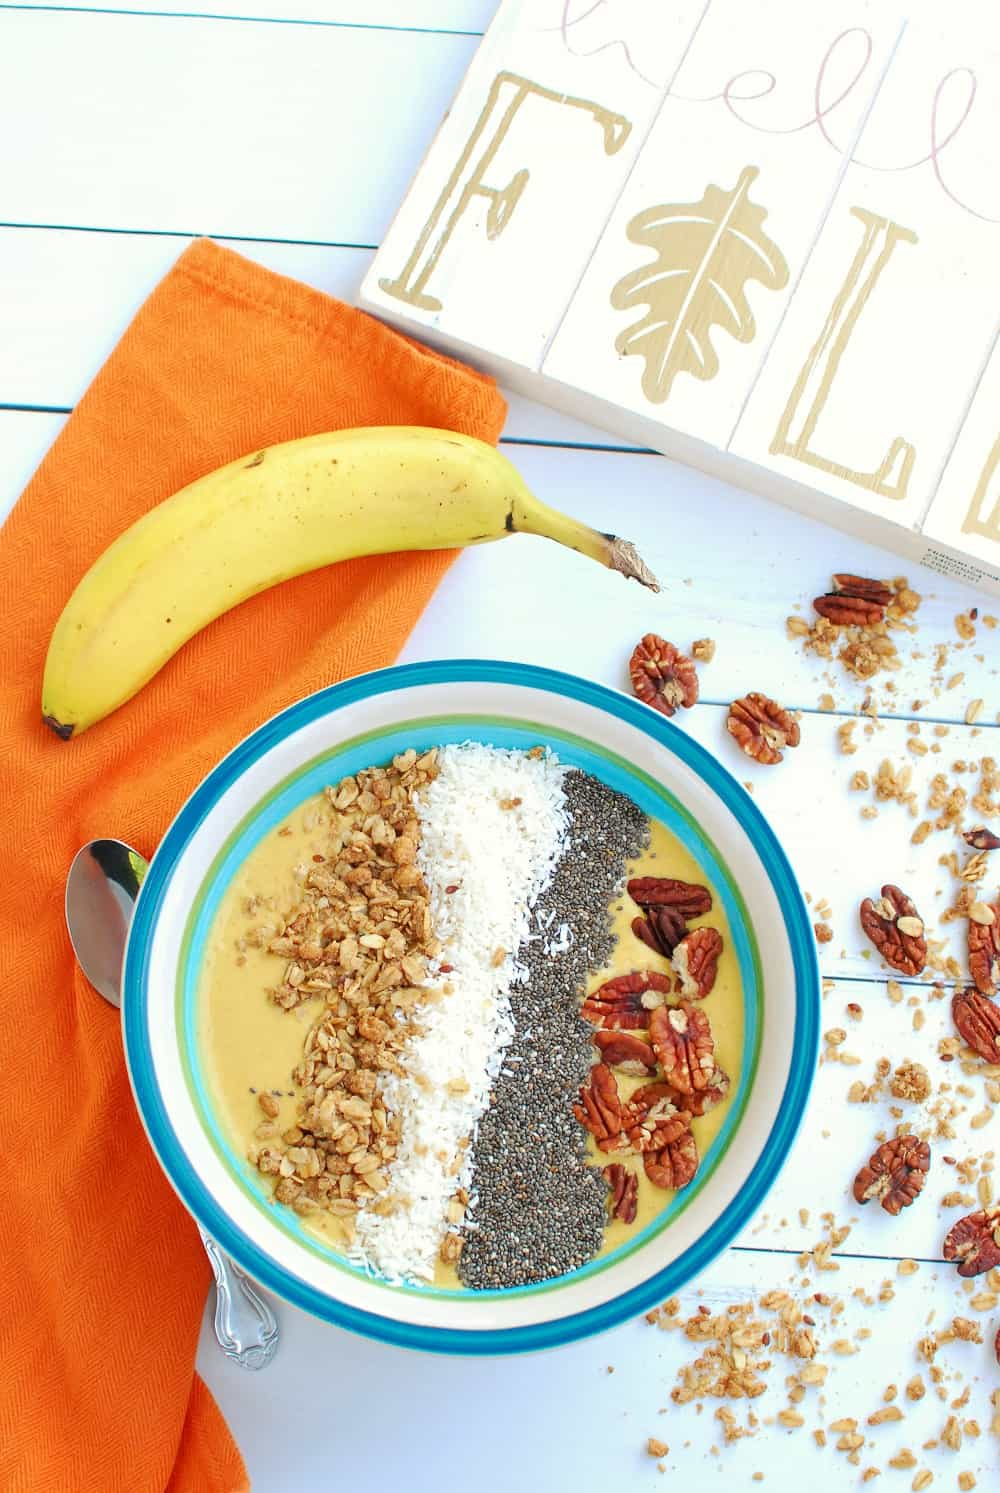 a pumpkin smoothie bowl next to an orange napkin, a banana, and some scattered granola and pecans